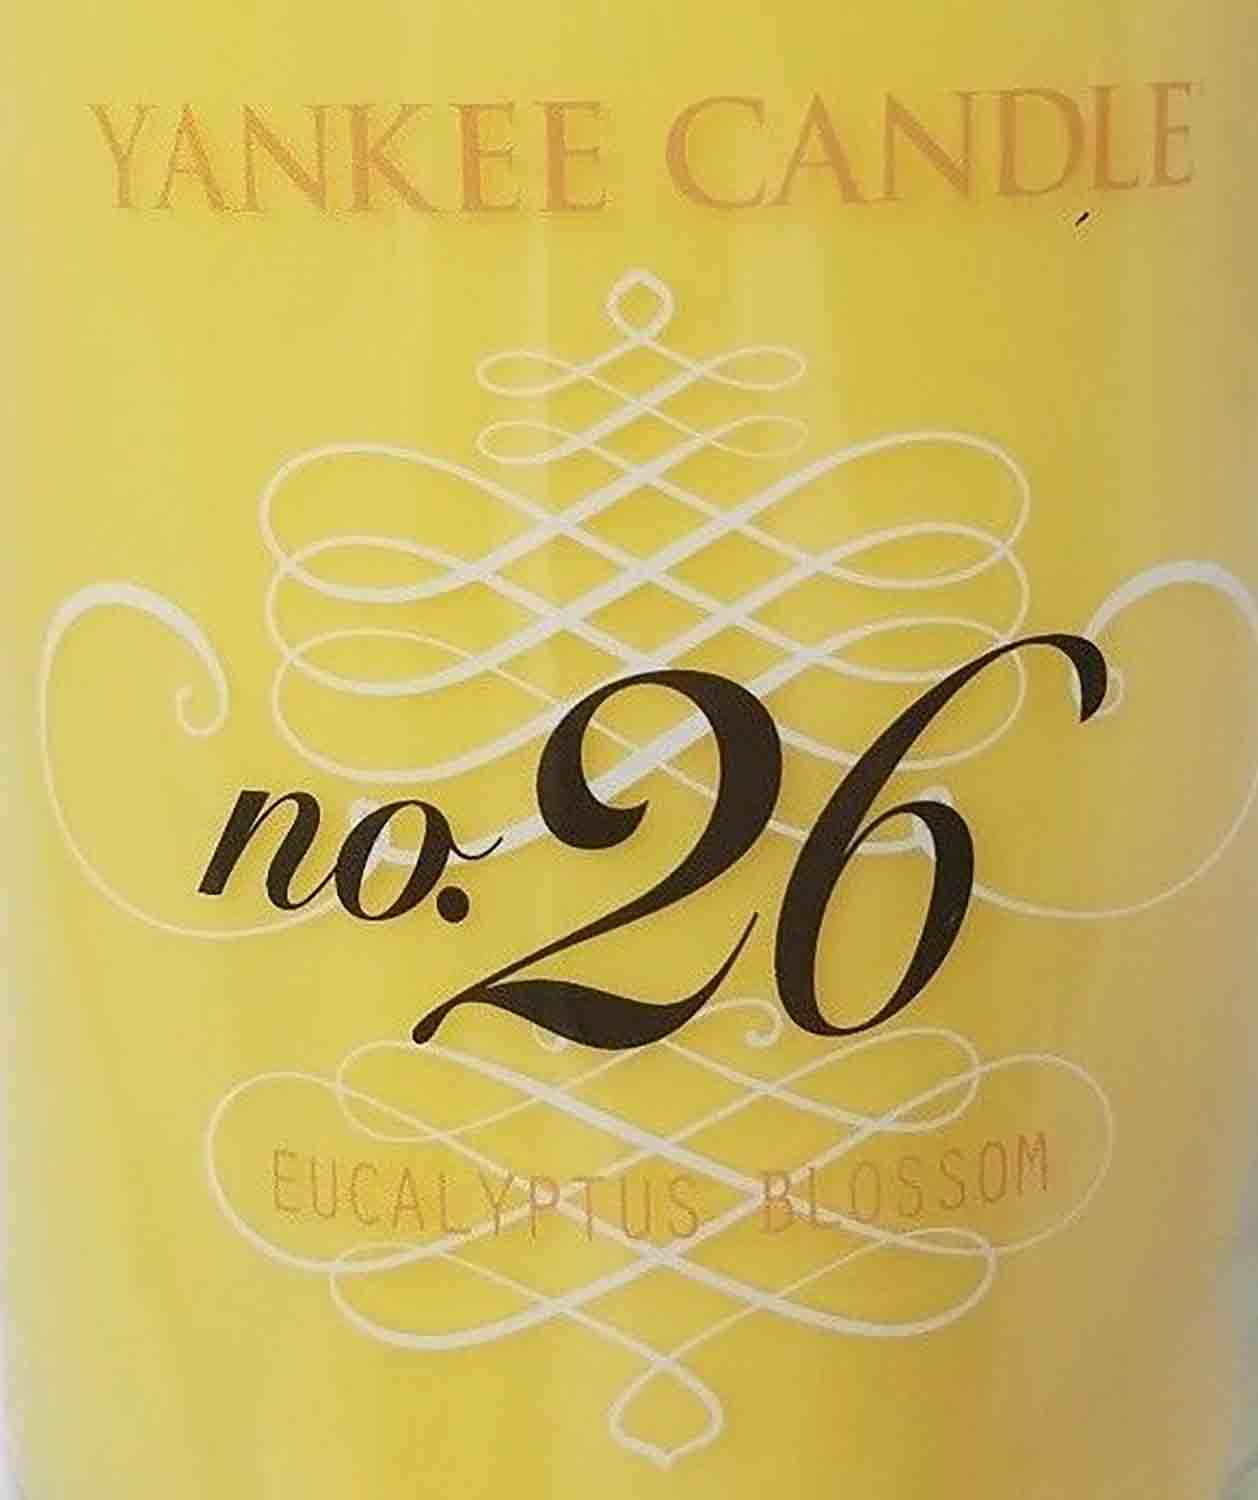 Crumble vosk Yankee Candle Eucalyptus Blossom no.26 USA 22 g